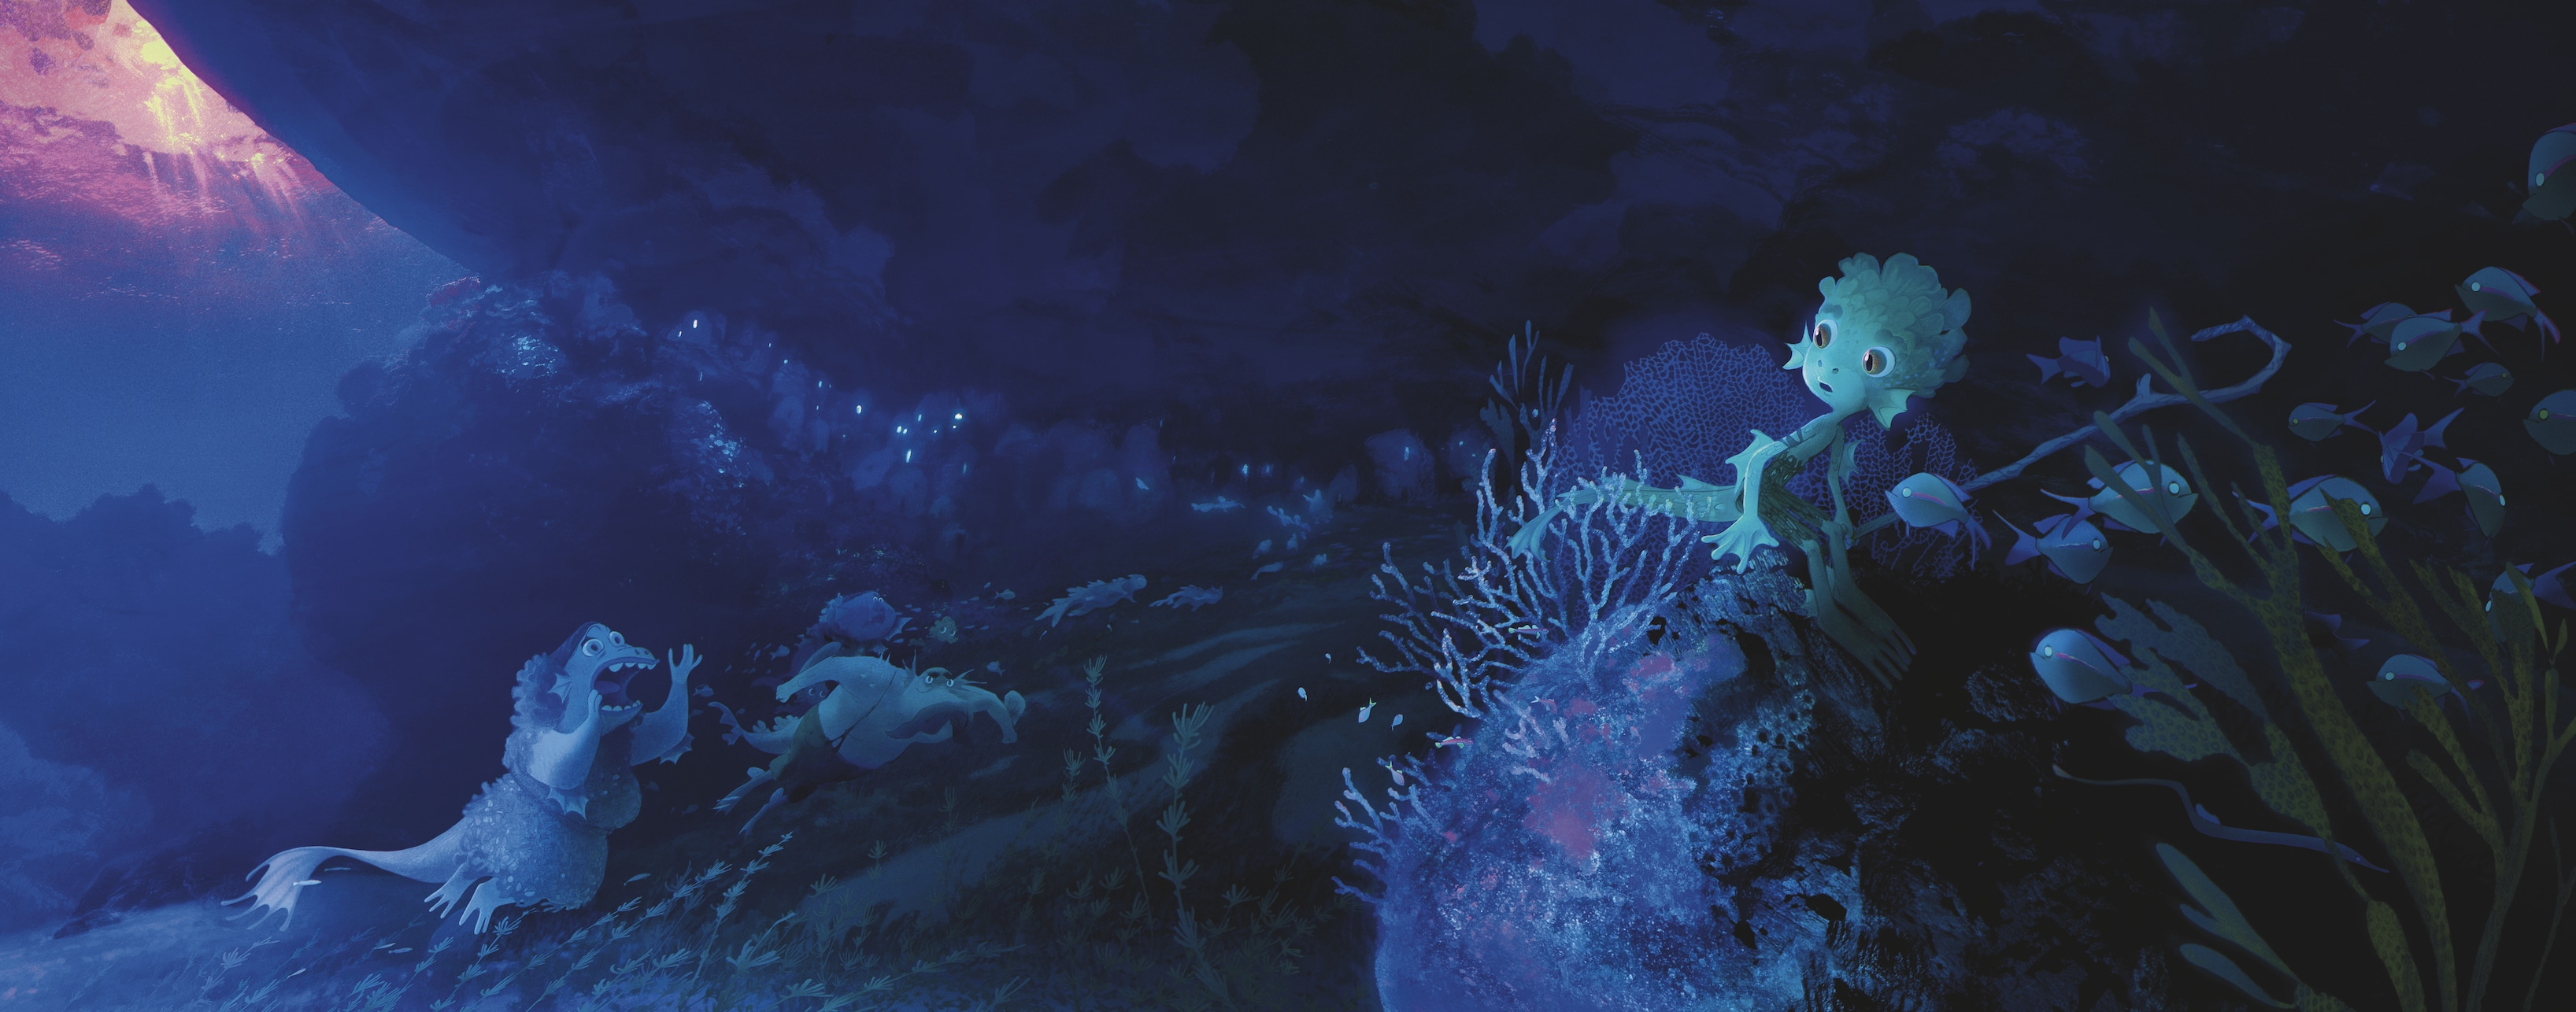 painting of Luca and his sea monster family